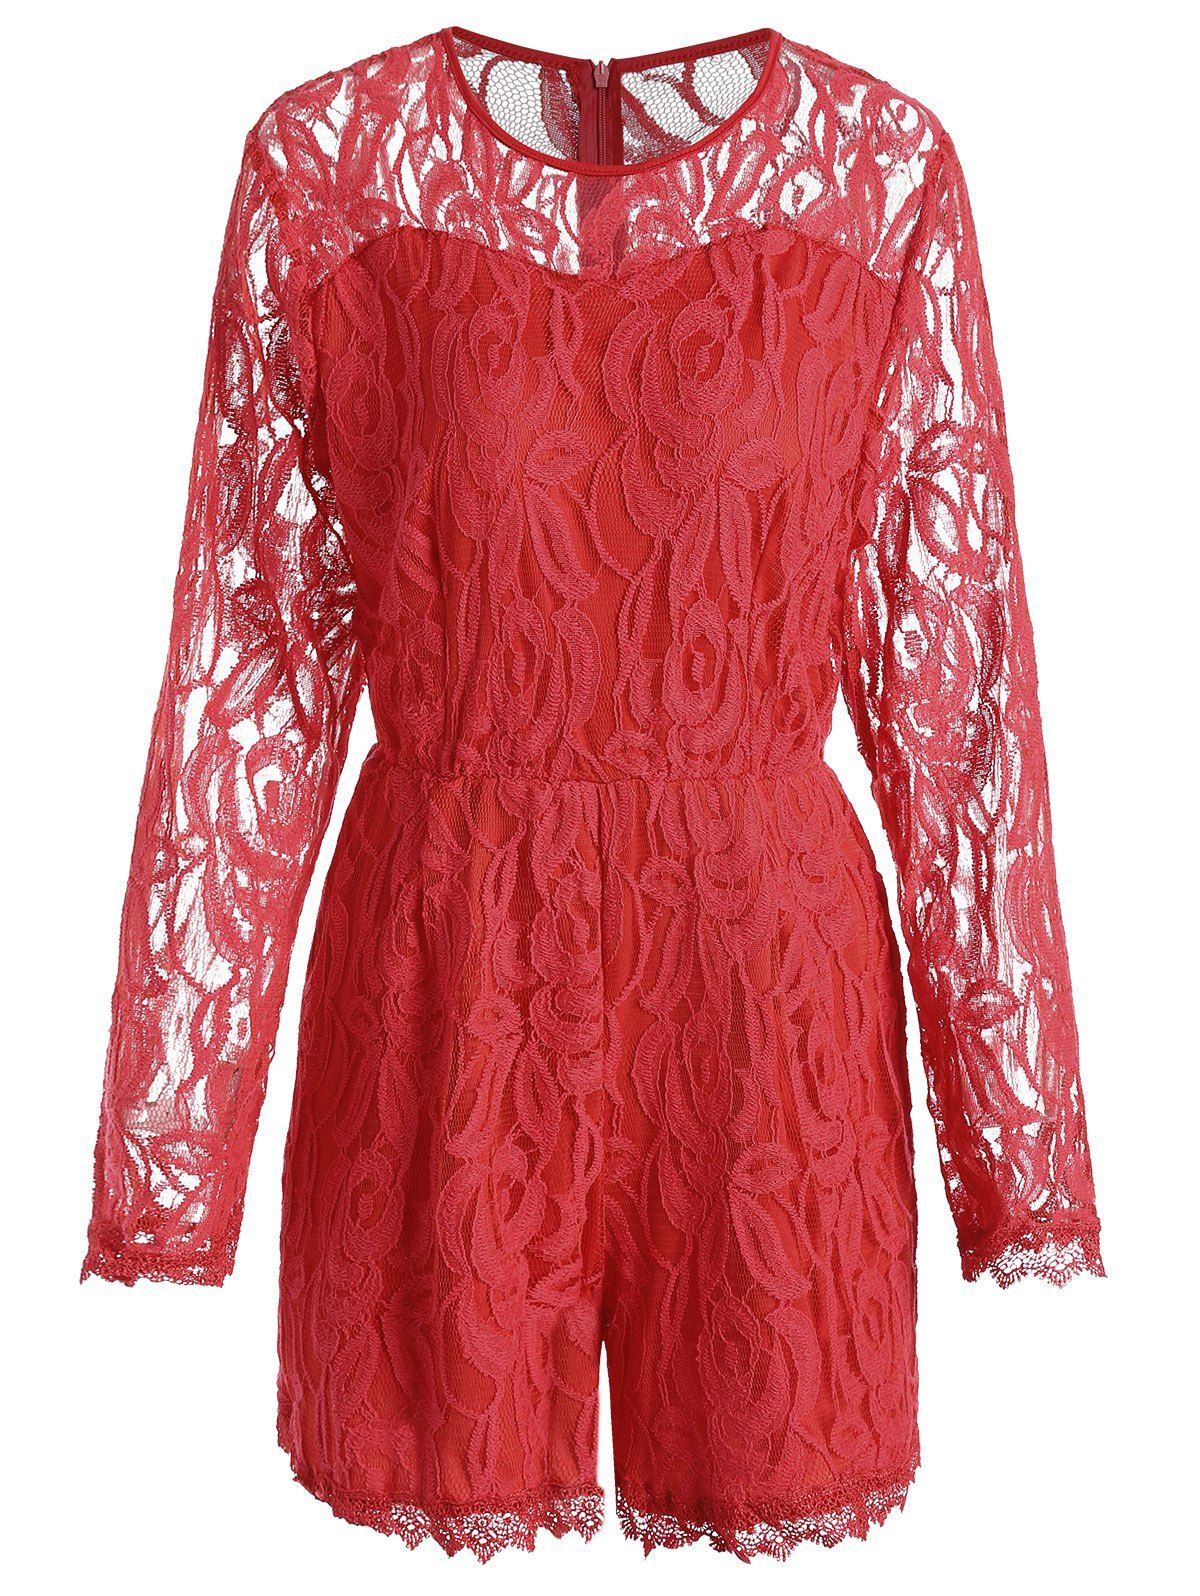 Pink see through lace dress  Lace Panel See Thru Plus Size Romper  Sammy dress and Shopping